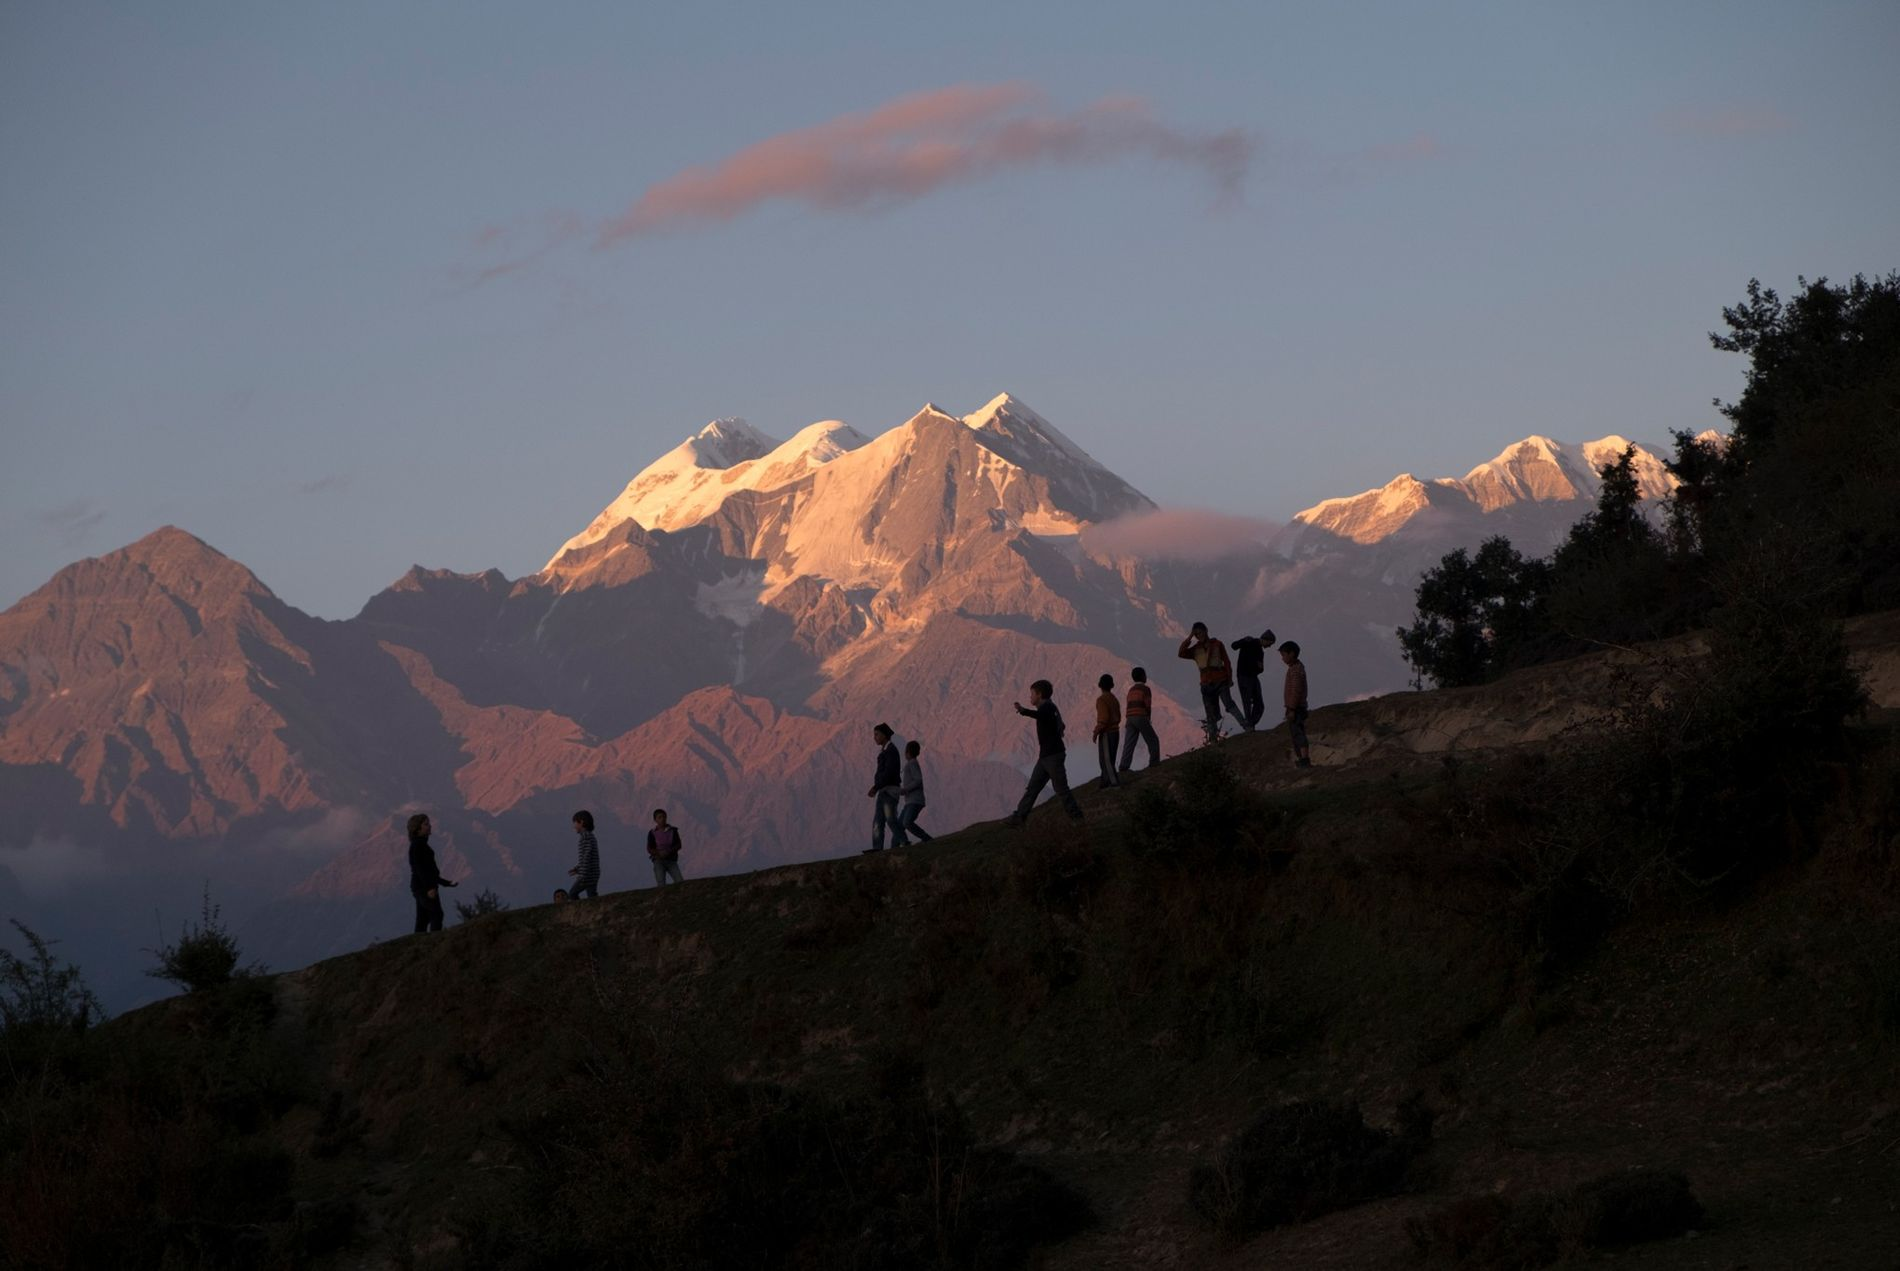 Children play soccer on a slope against a backdrop of the sunlit peaks of Nanda Devi, ...